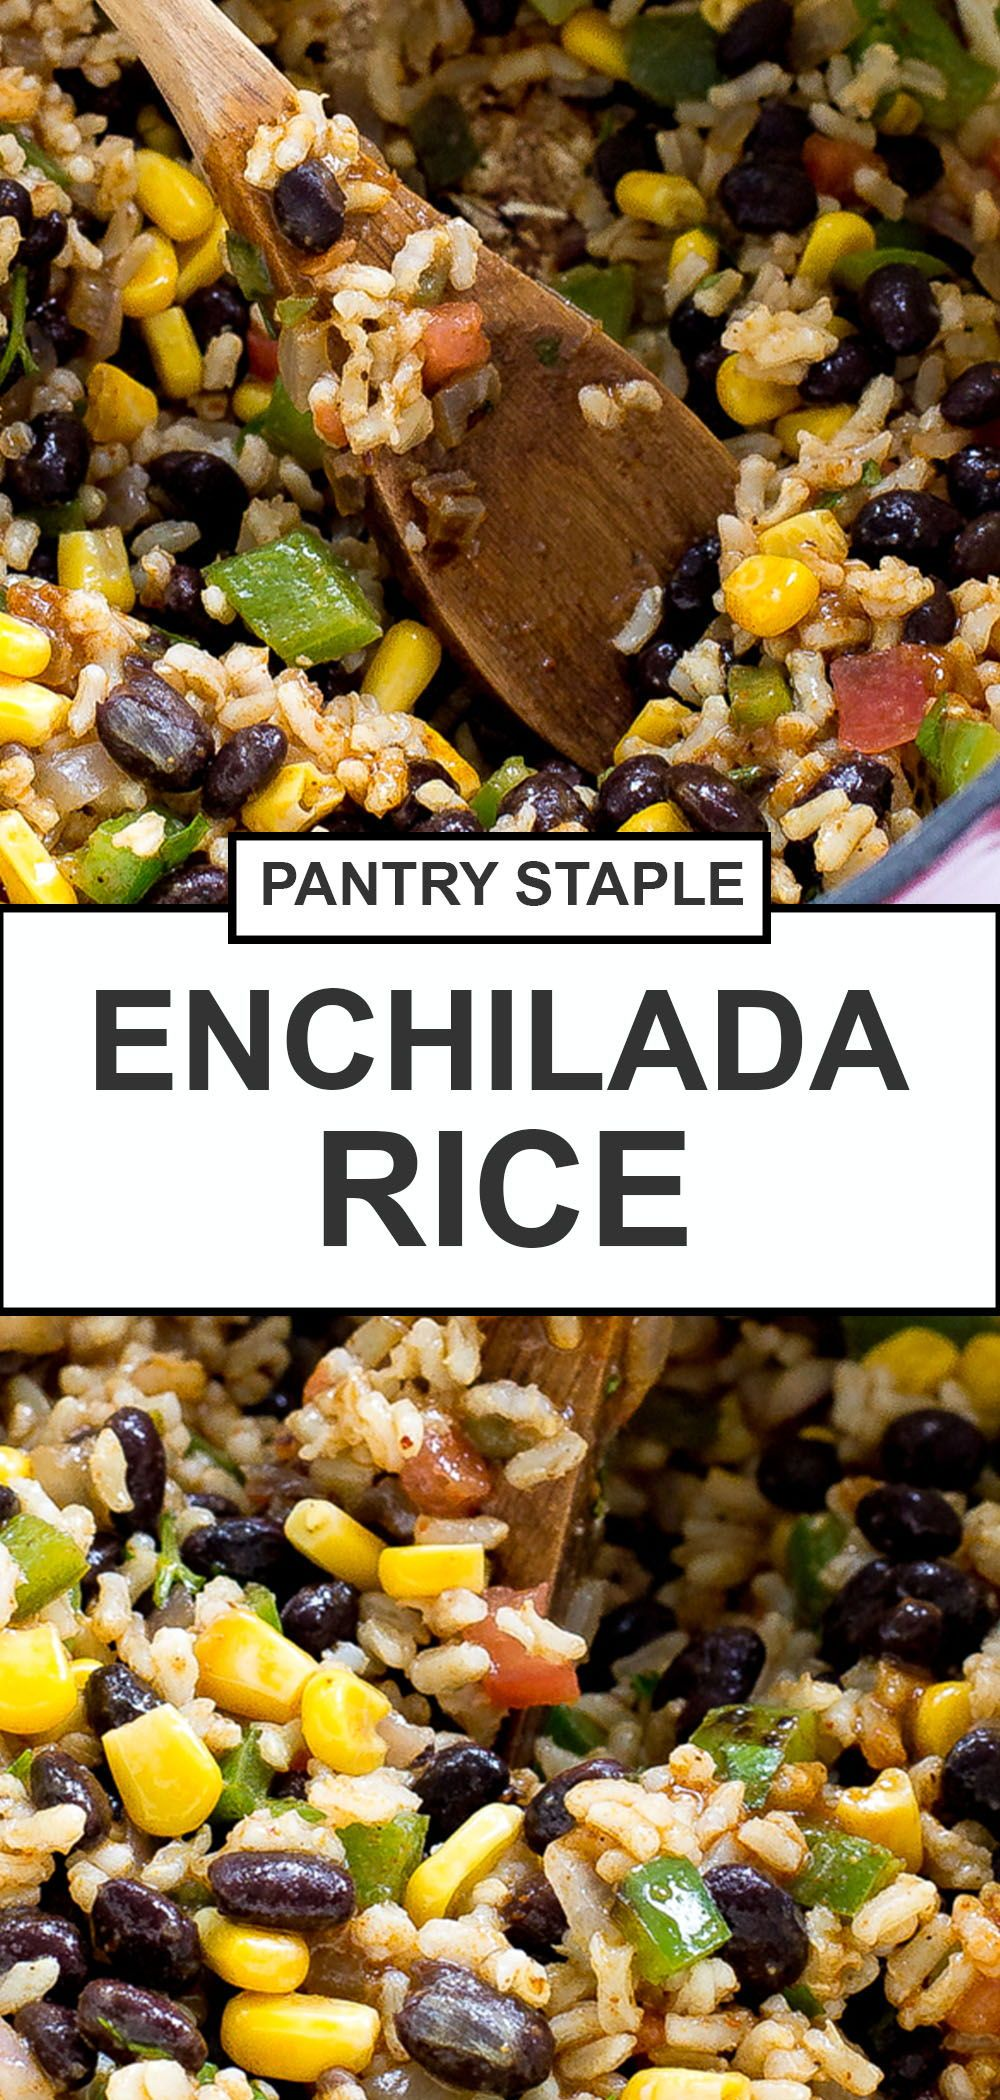 Enchilada Rice (with Homemade Enchilada Sauce!) - Chef Savvy